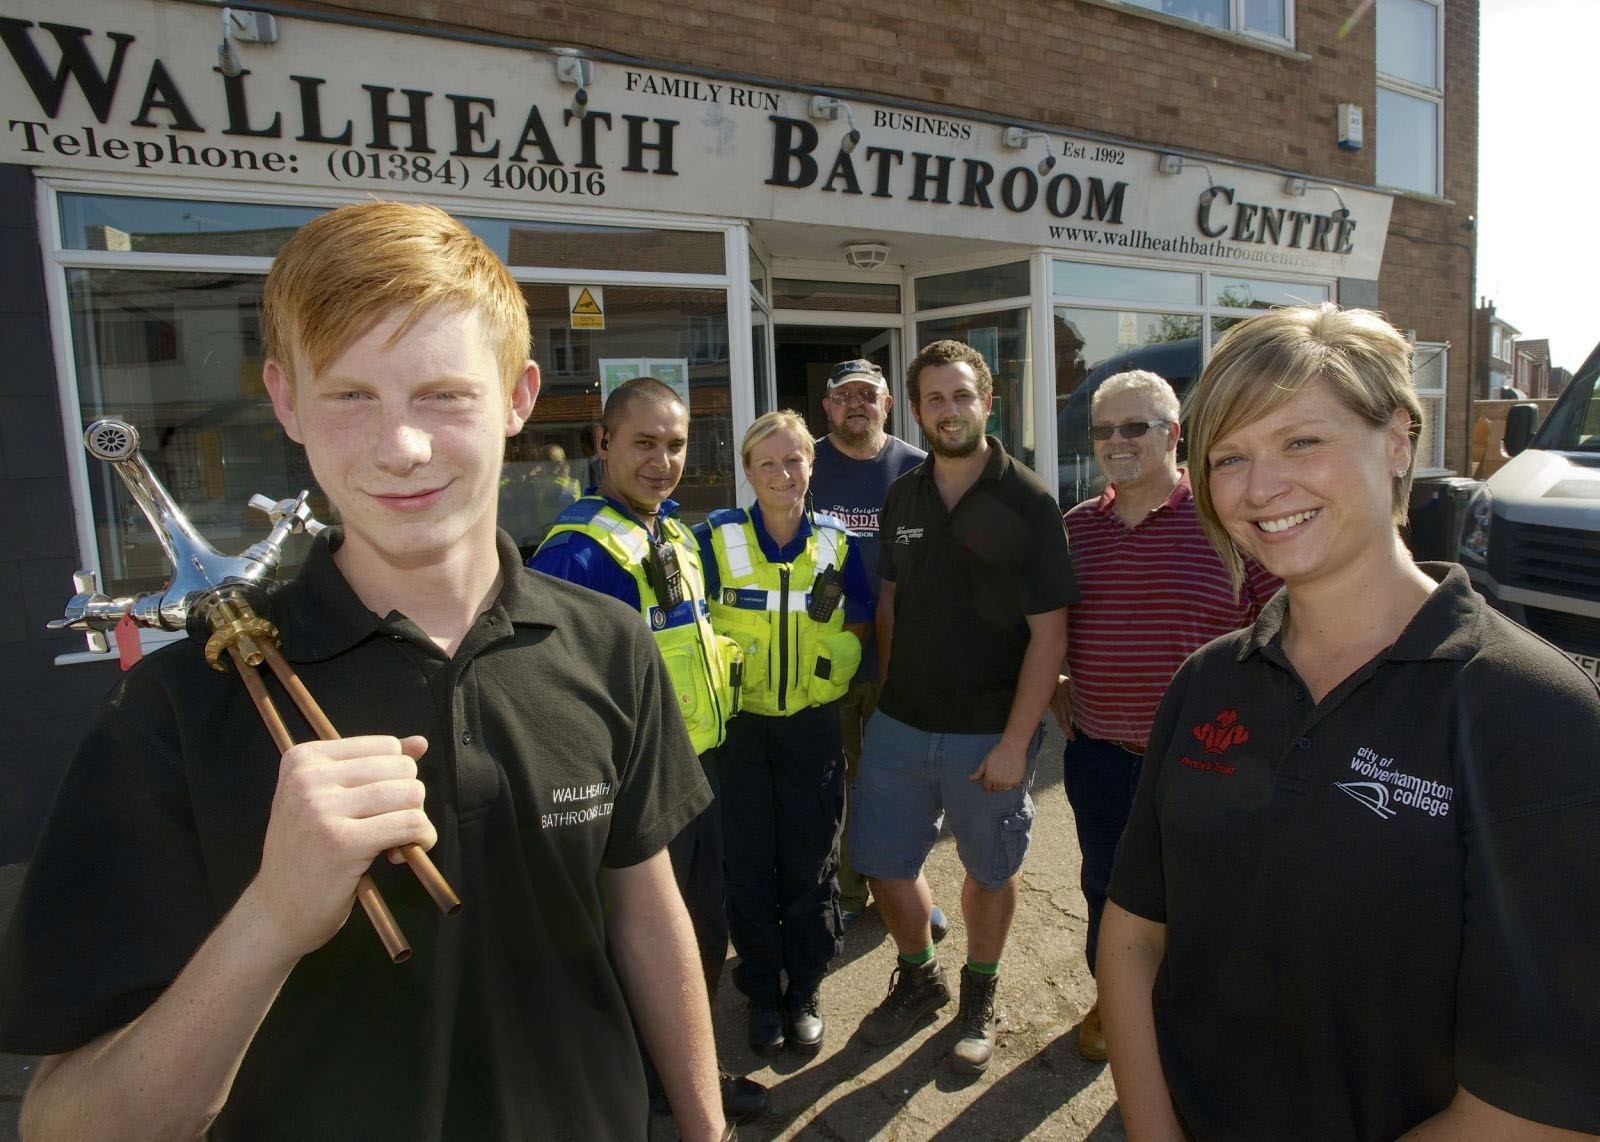 Foreground: Shaun Abbott and PCSO Hayley Giles.Background: L/R PCSO Omar Shairiff, PCSO Faye Cartwright, Frank Price  from City Can Cycle, Tom Taylor (City of Wolverhampton College, Assistant Team Leader), Stephen Taylor (Owner of Wall Heath Bathroom Cent